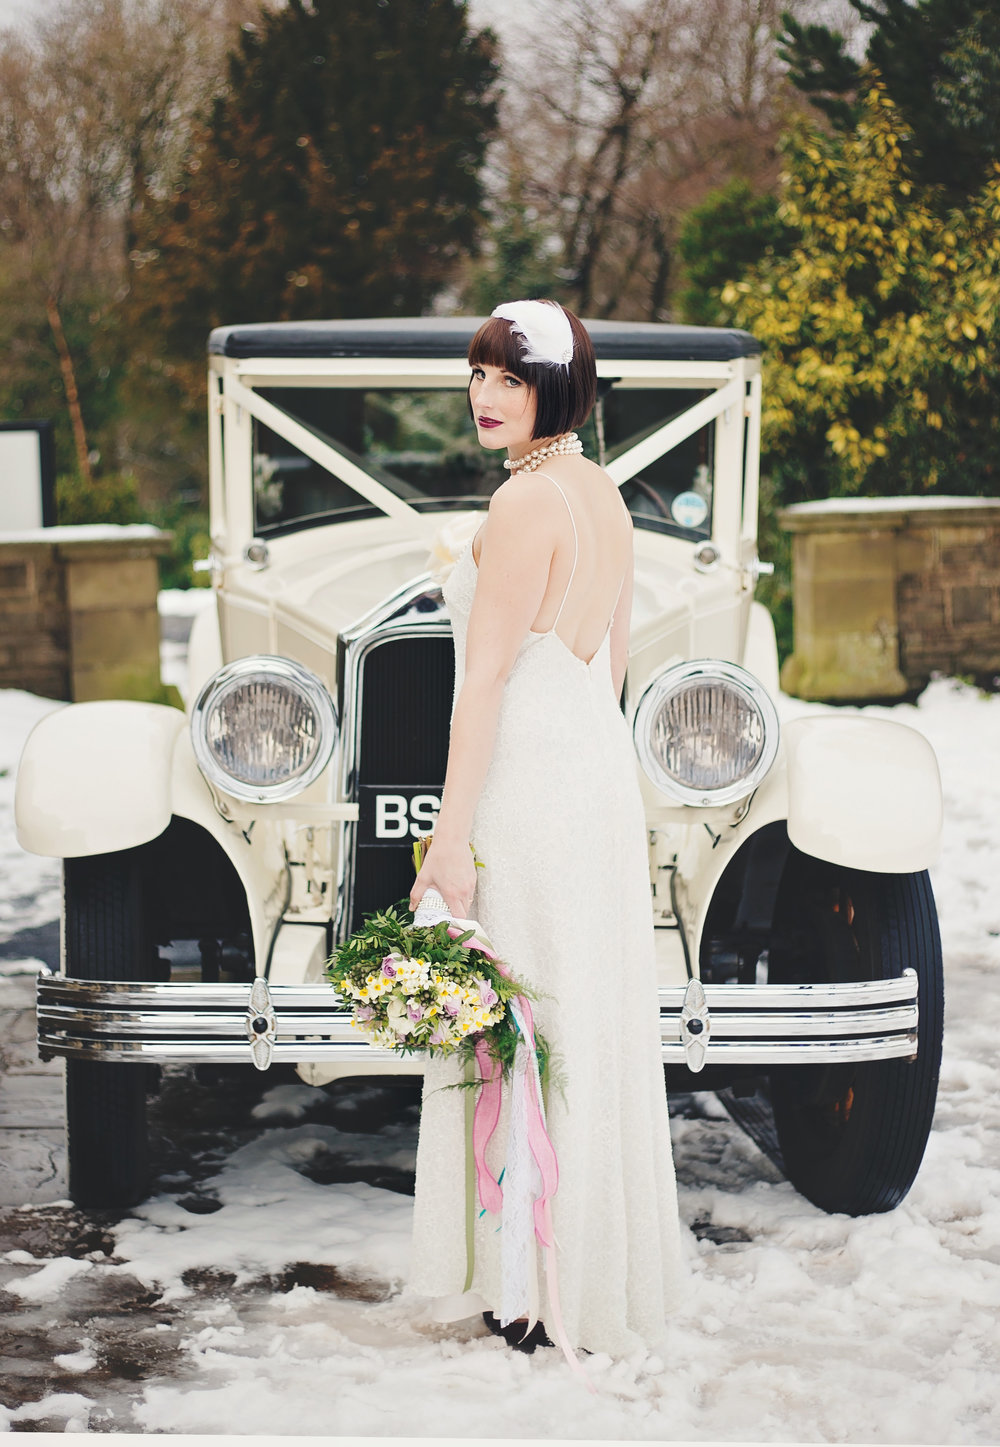 The bride stood infront of the wedding car with flowers her hand- Lancashire 1920 themed wedding, creative photography